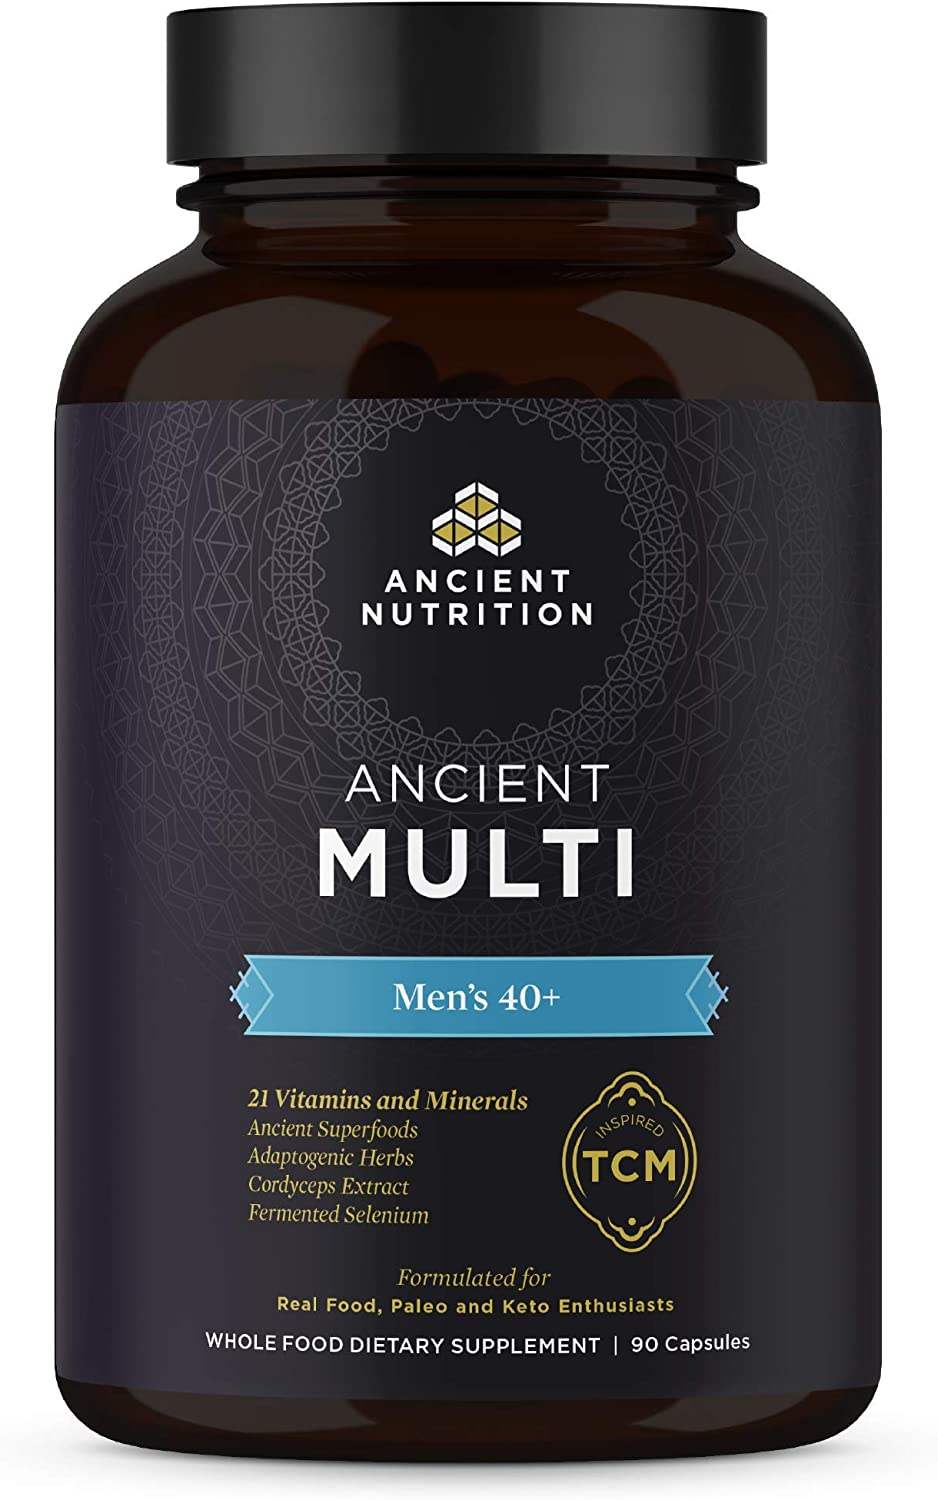 Ancient Nutrition, Ancient Multi Men s 40 – 21 Vitamins Minerals, Adaptogenic Herbs, Fermented Selenium, Paleo Keto Friendly, 90 Capsules